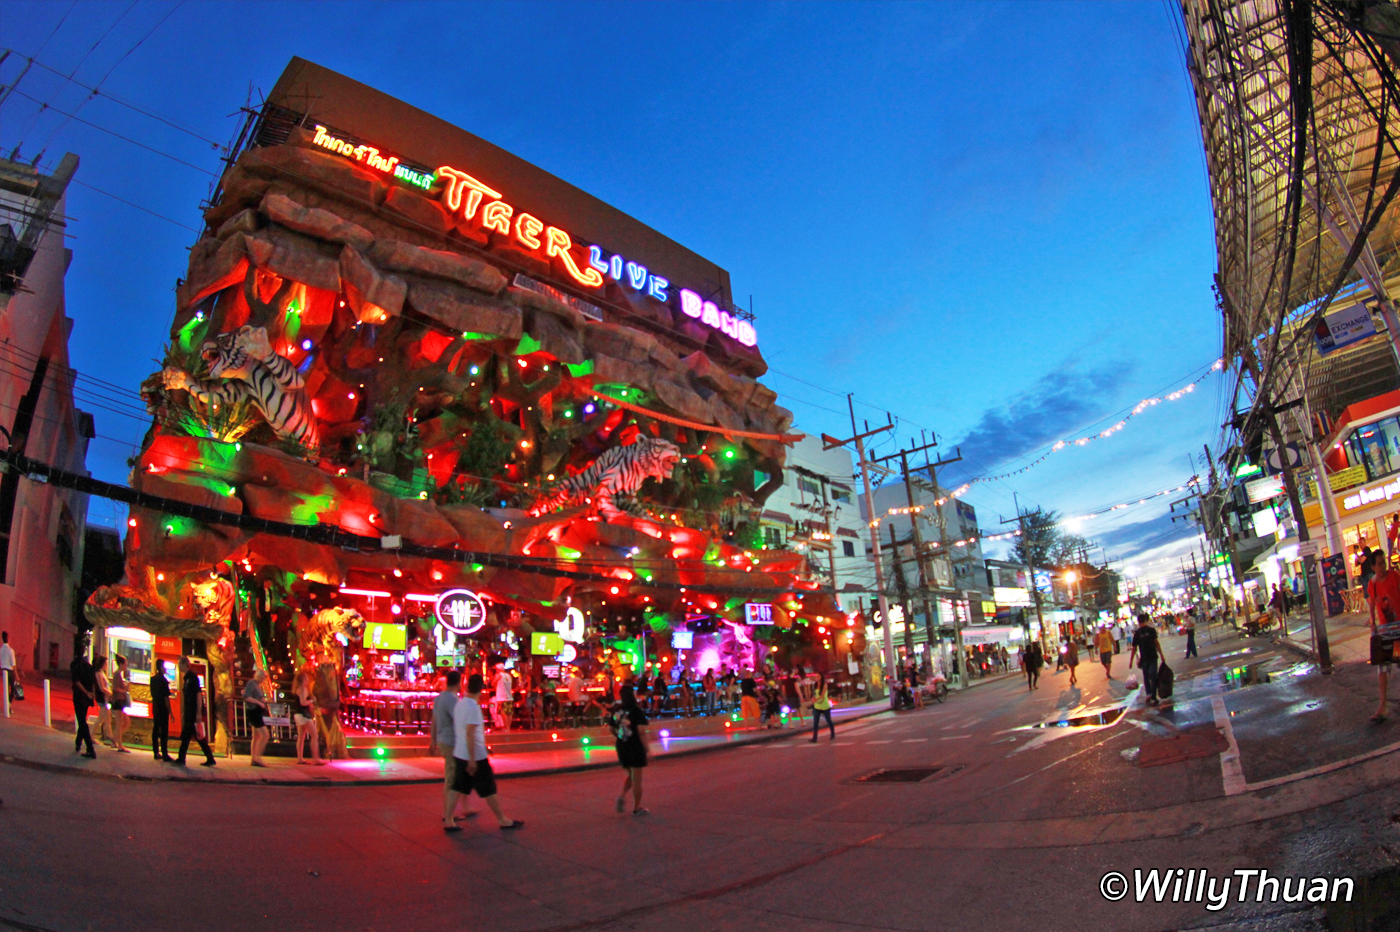 Phuket Nightlife – What to Do at Night in Phuket